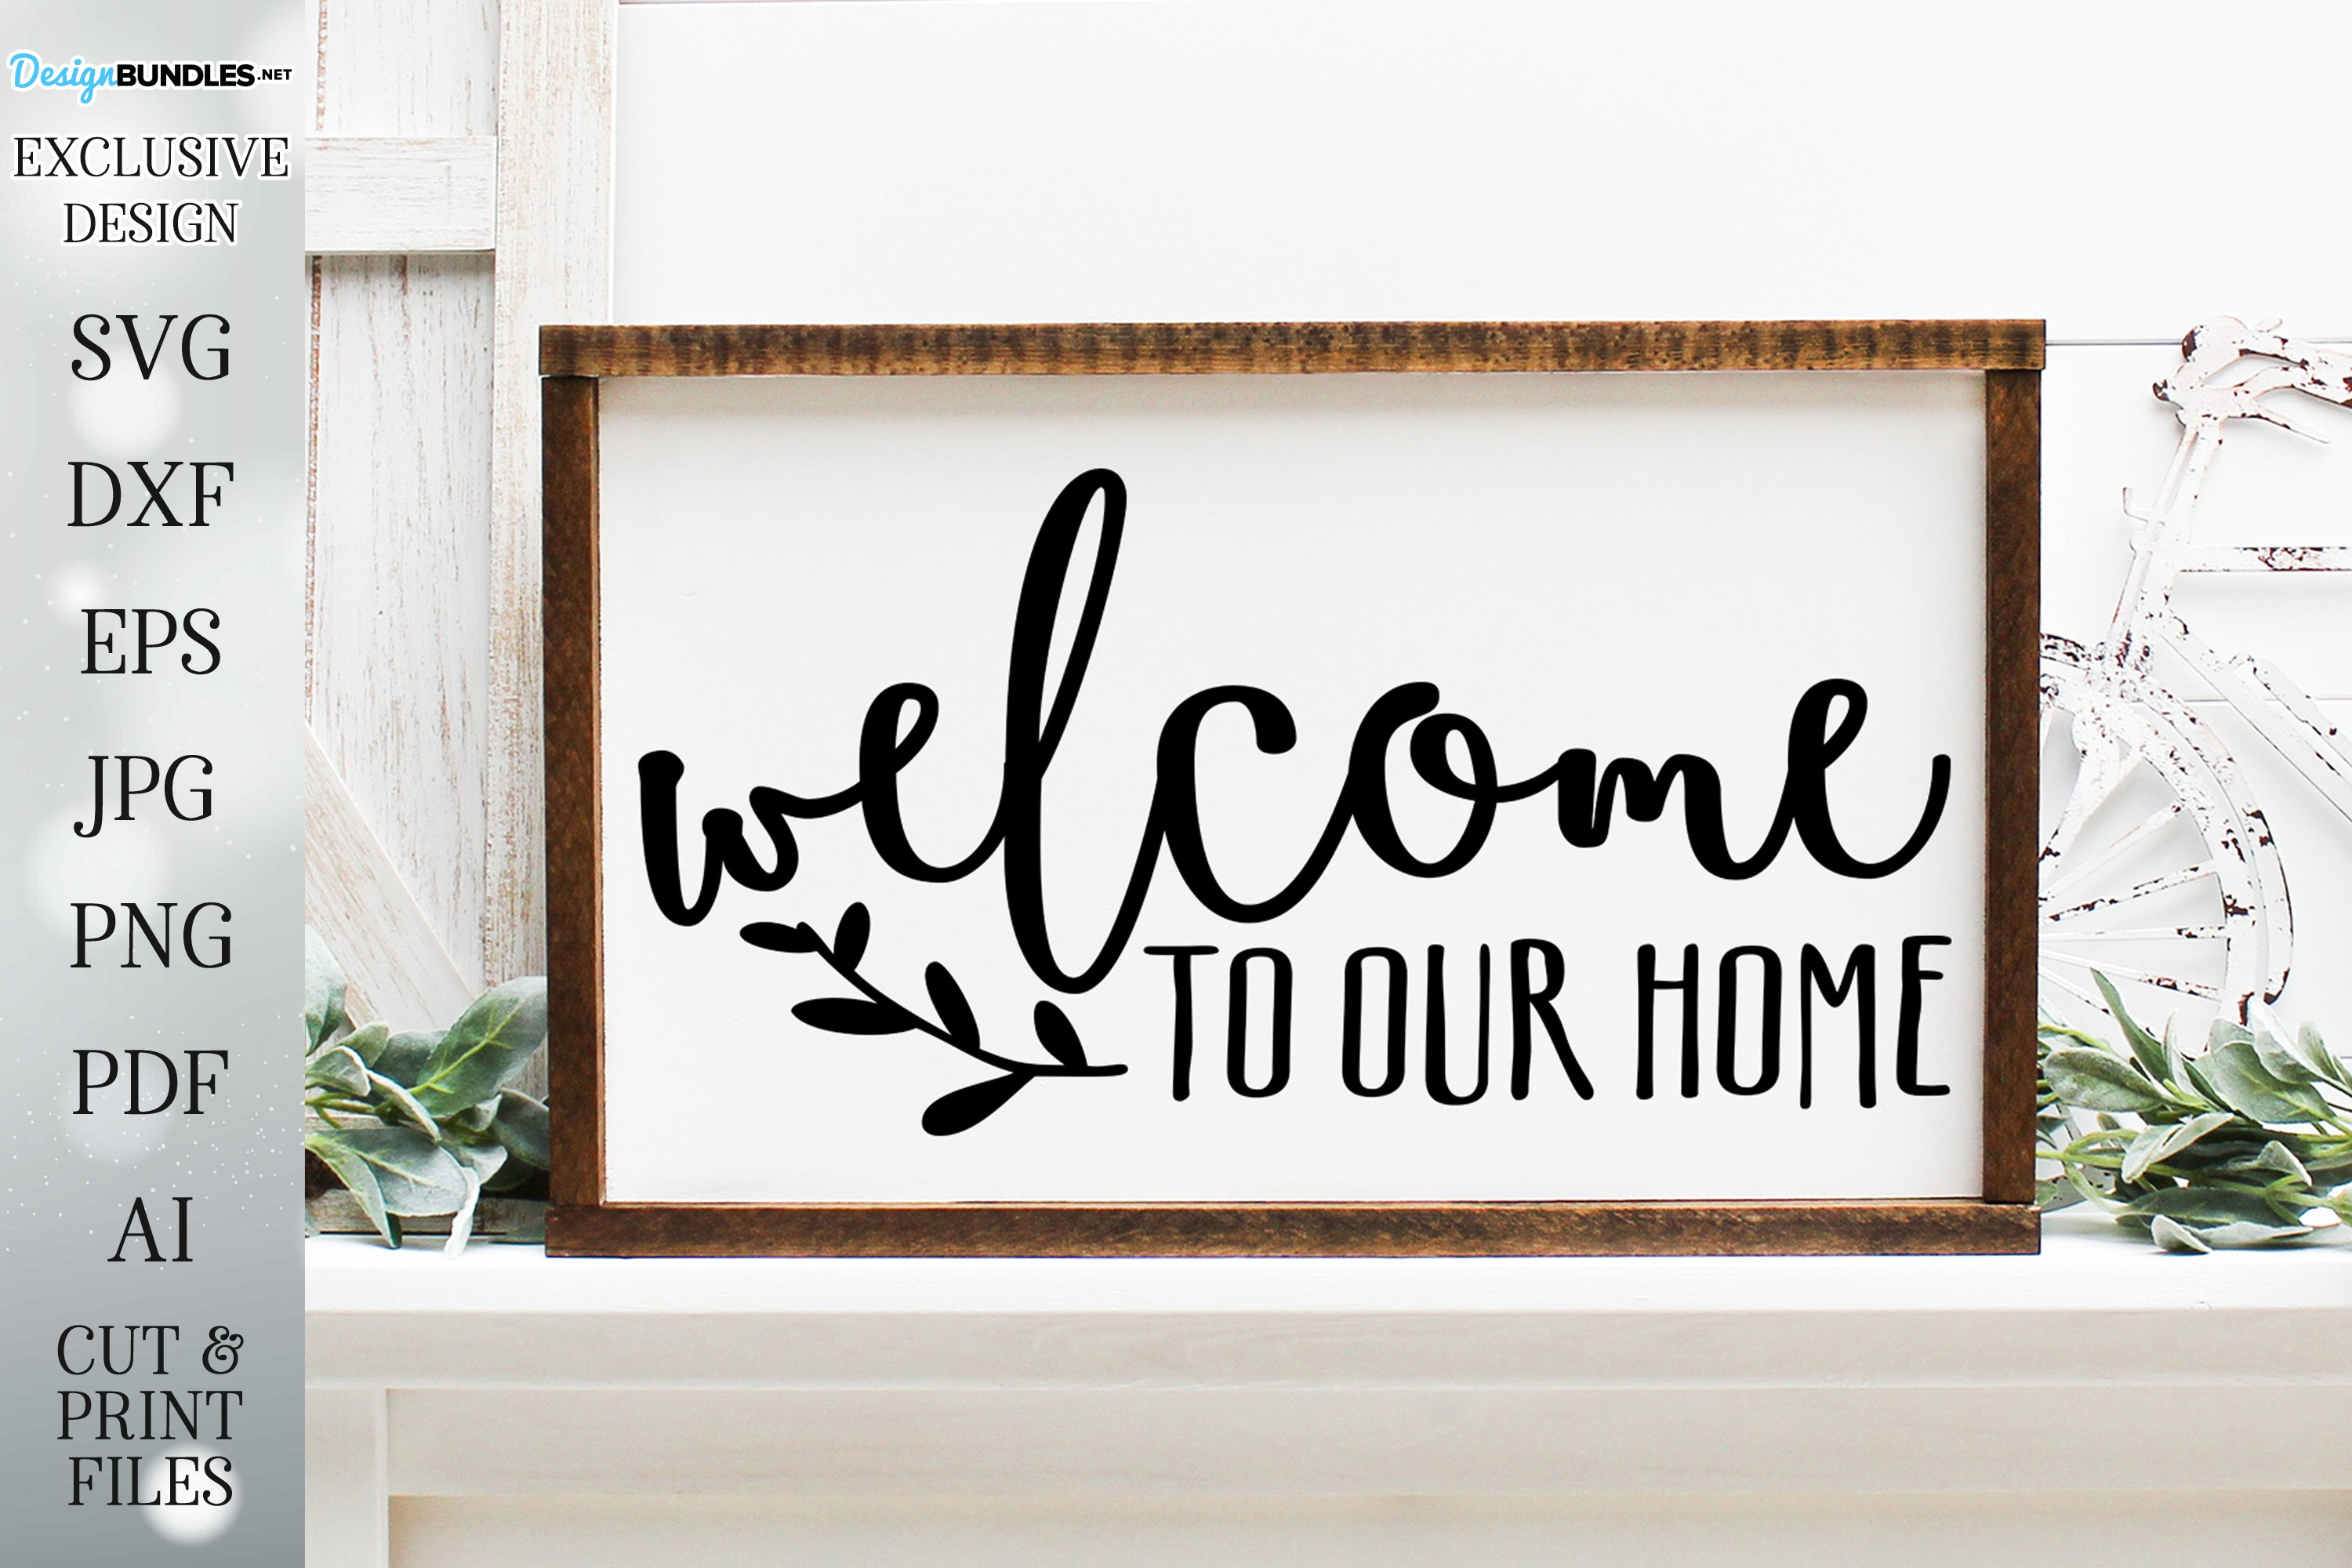 Welcome To Our Home - Farmhouse Wreath Sign example image 1